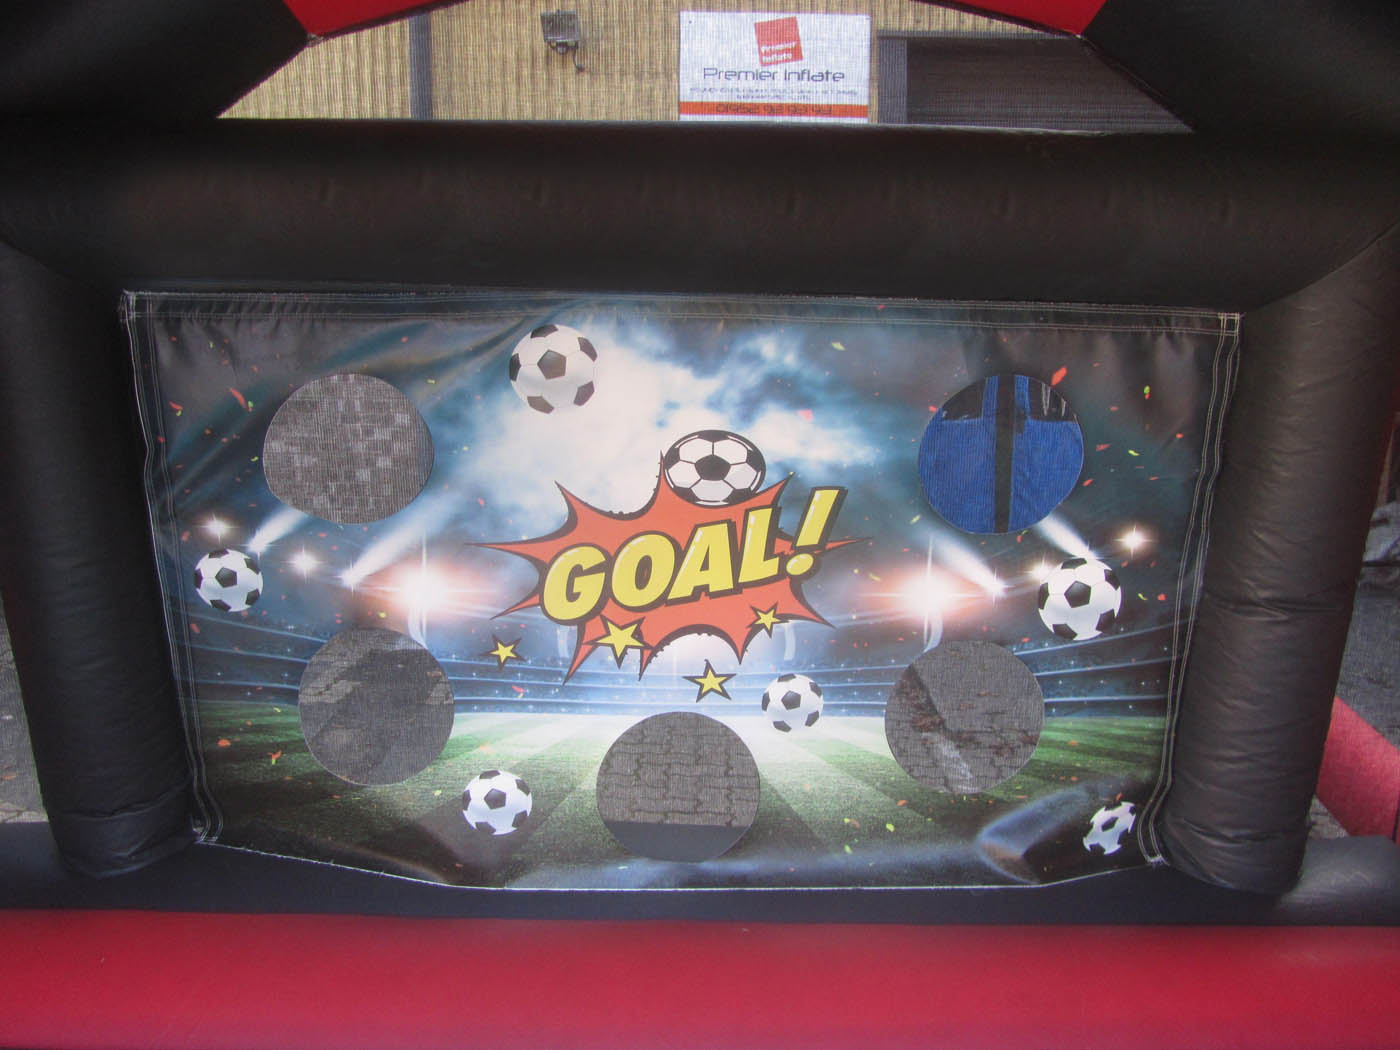 Vibrant Digitally Printed Artwork on Inflatable Penalty Shoot Out